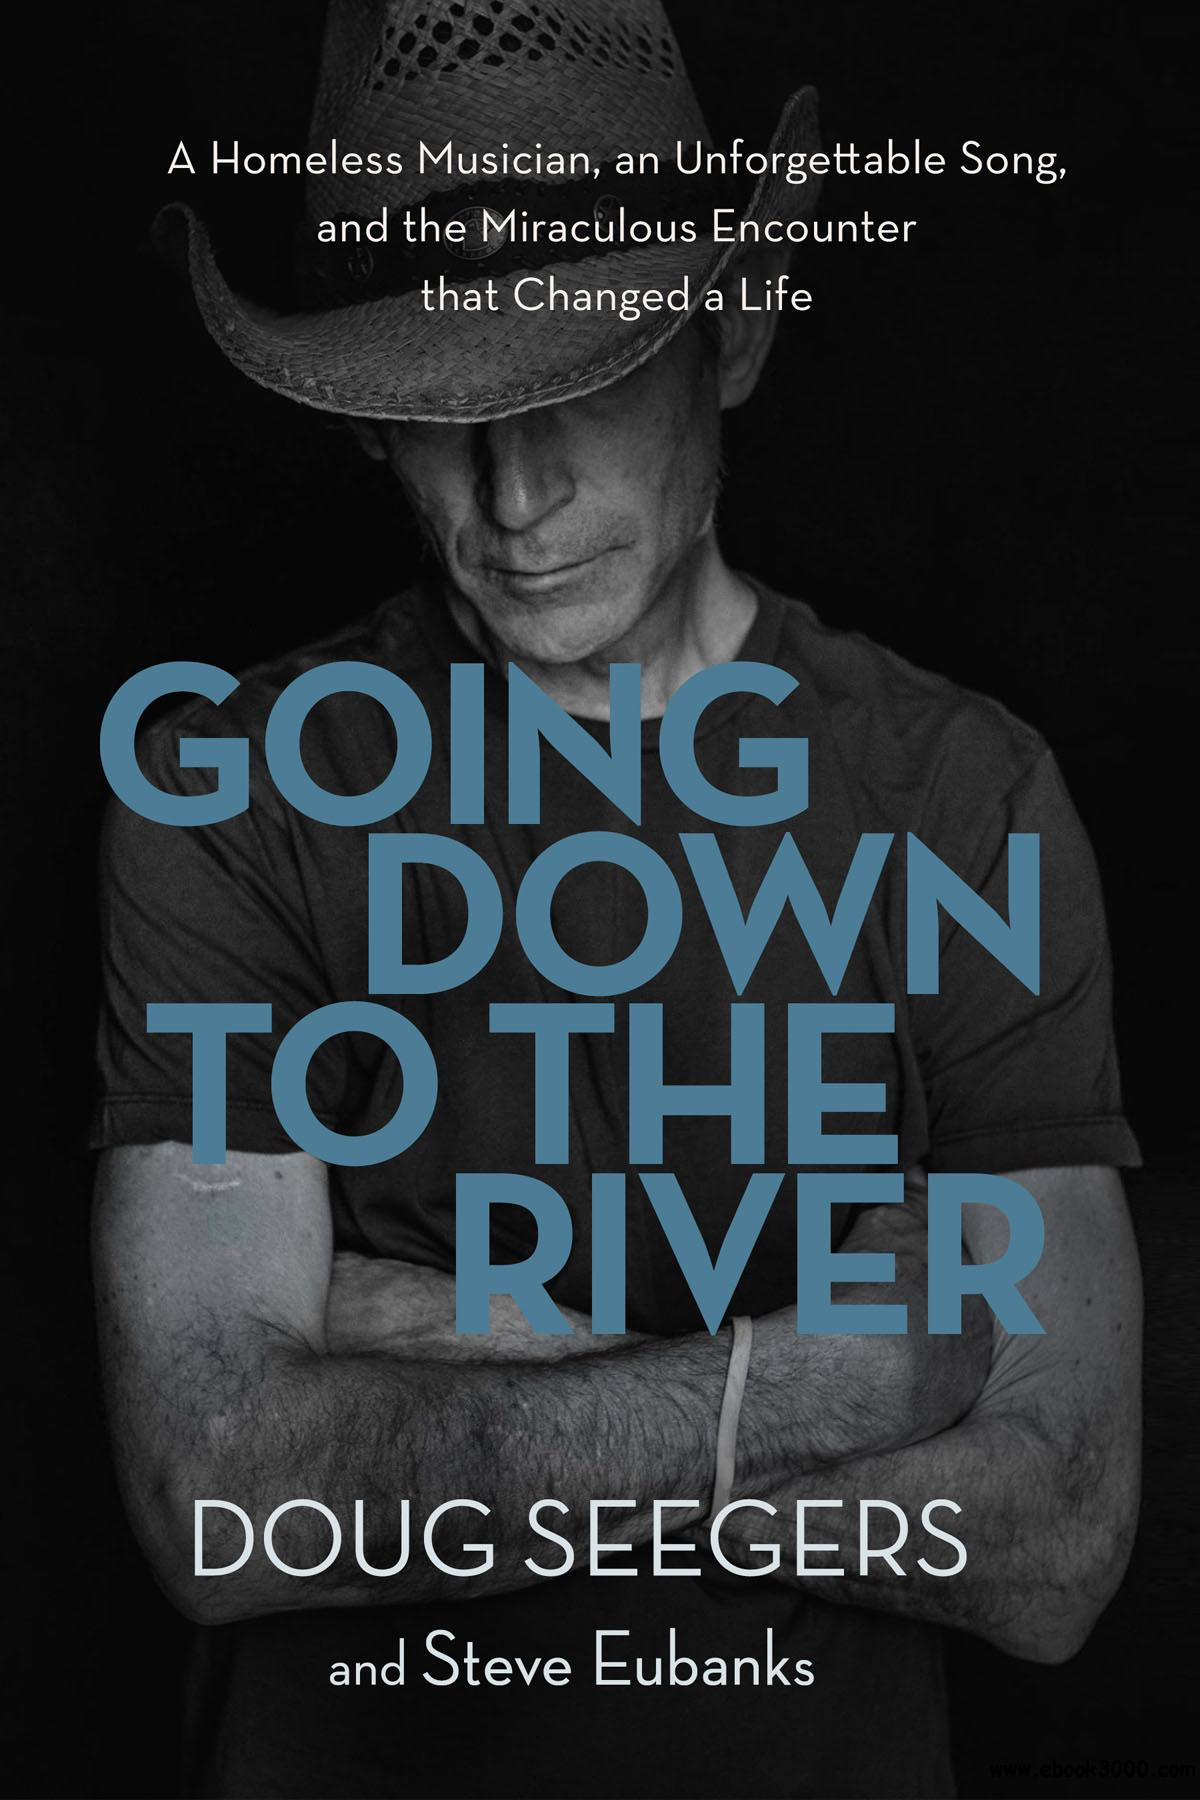 Going Down to the River: A Homeless Musician, an Unforgettable Song, and the Miraculous Encounter that Changed a Life